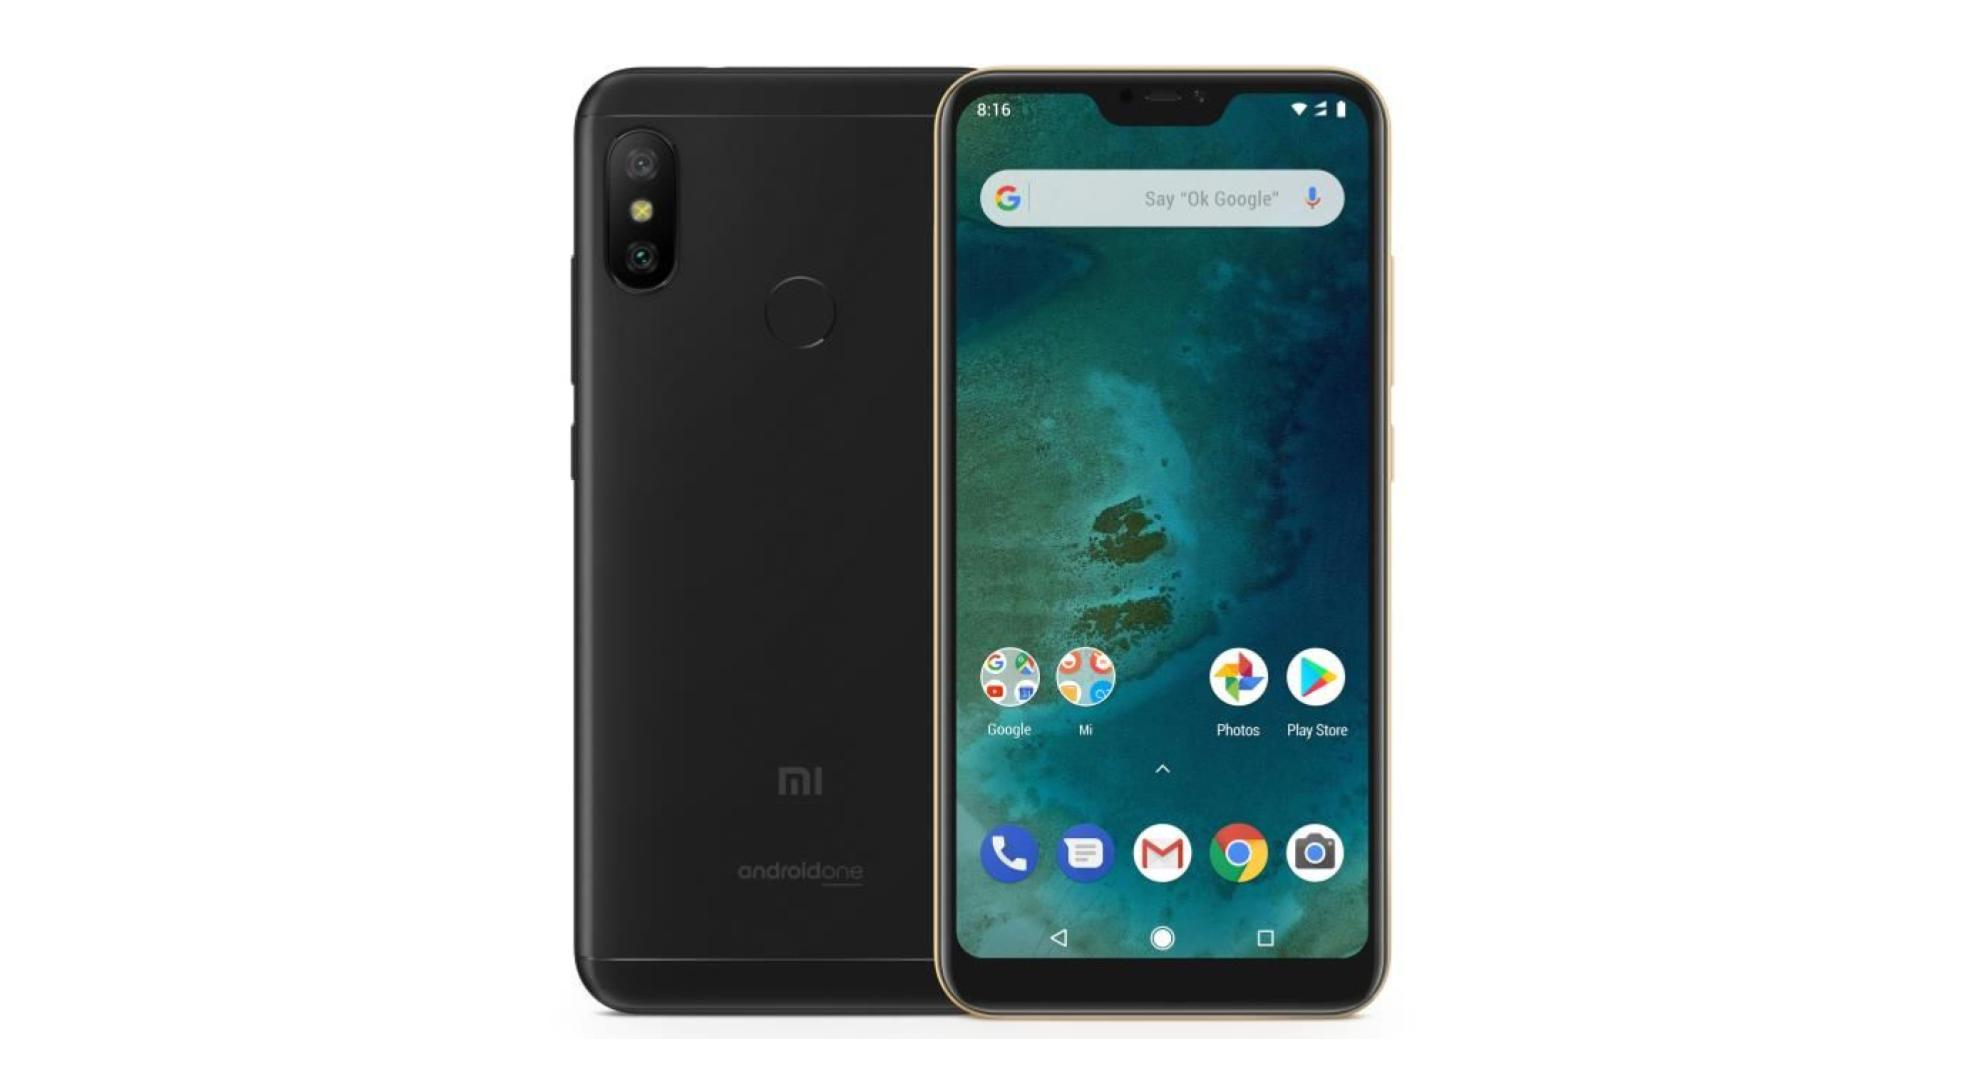 🔥 Bon plan du week-end : le Xiaomi Mi A2 Lite tombe à 109 euros seulement